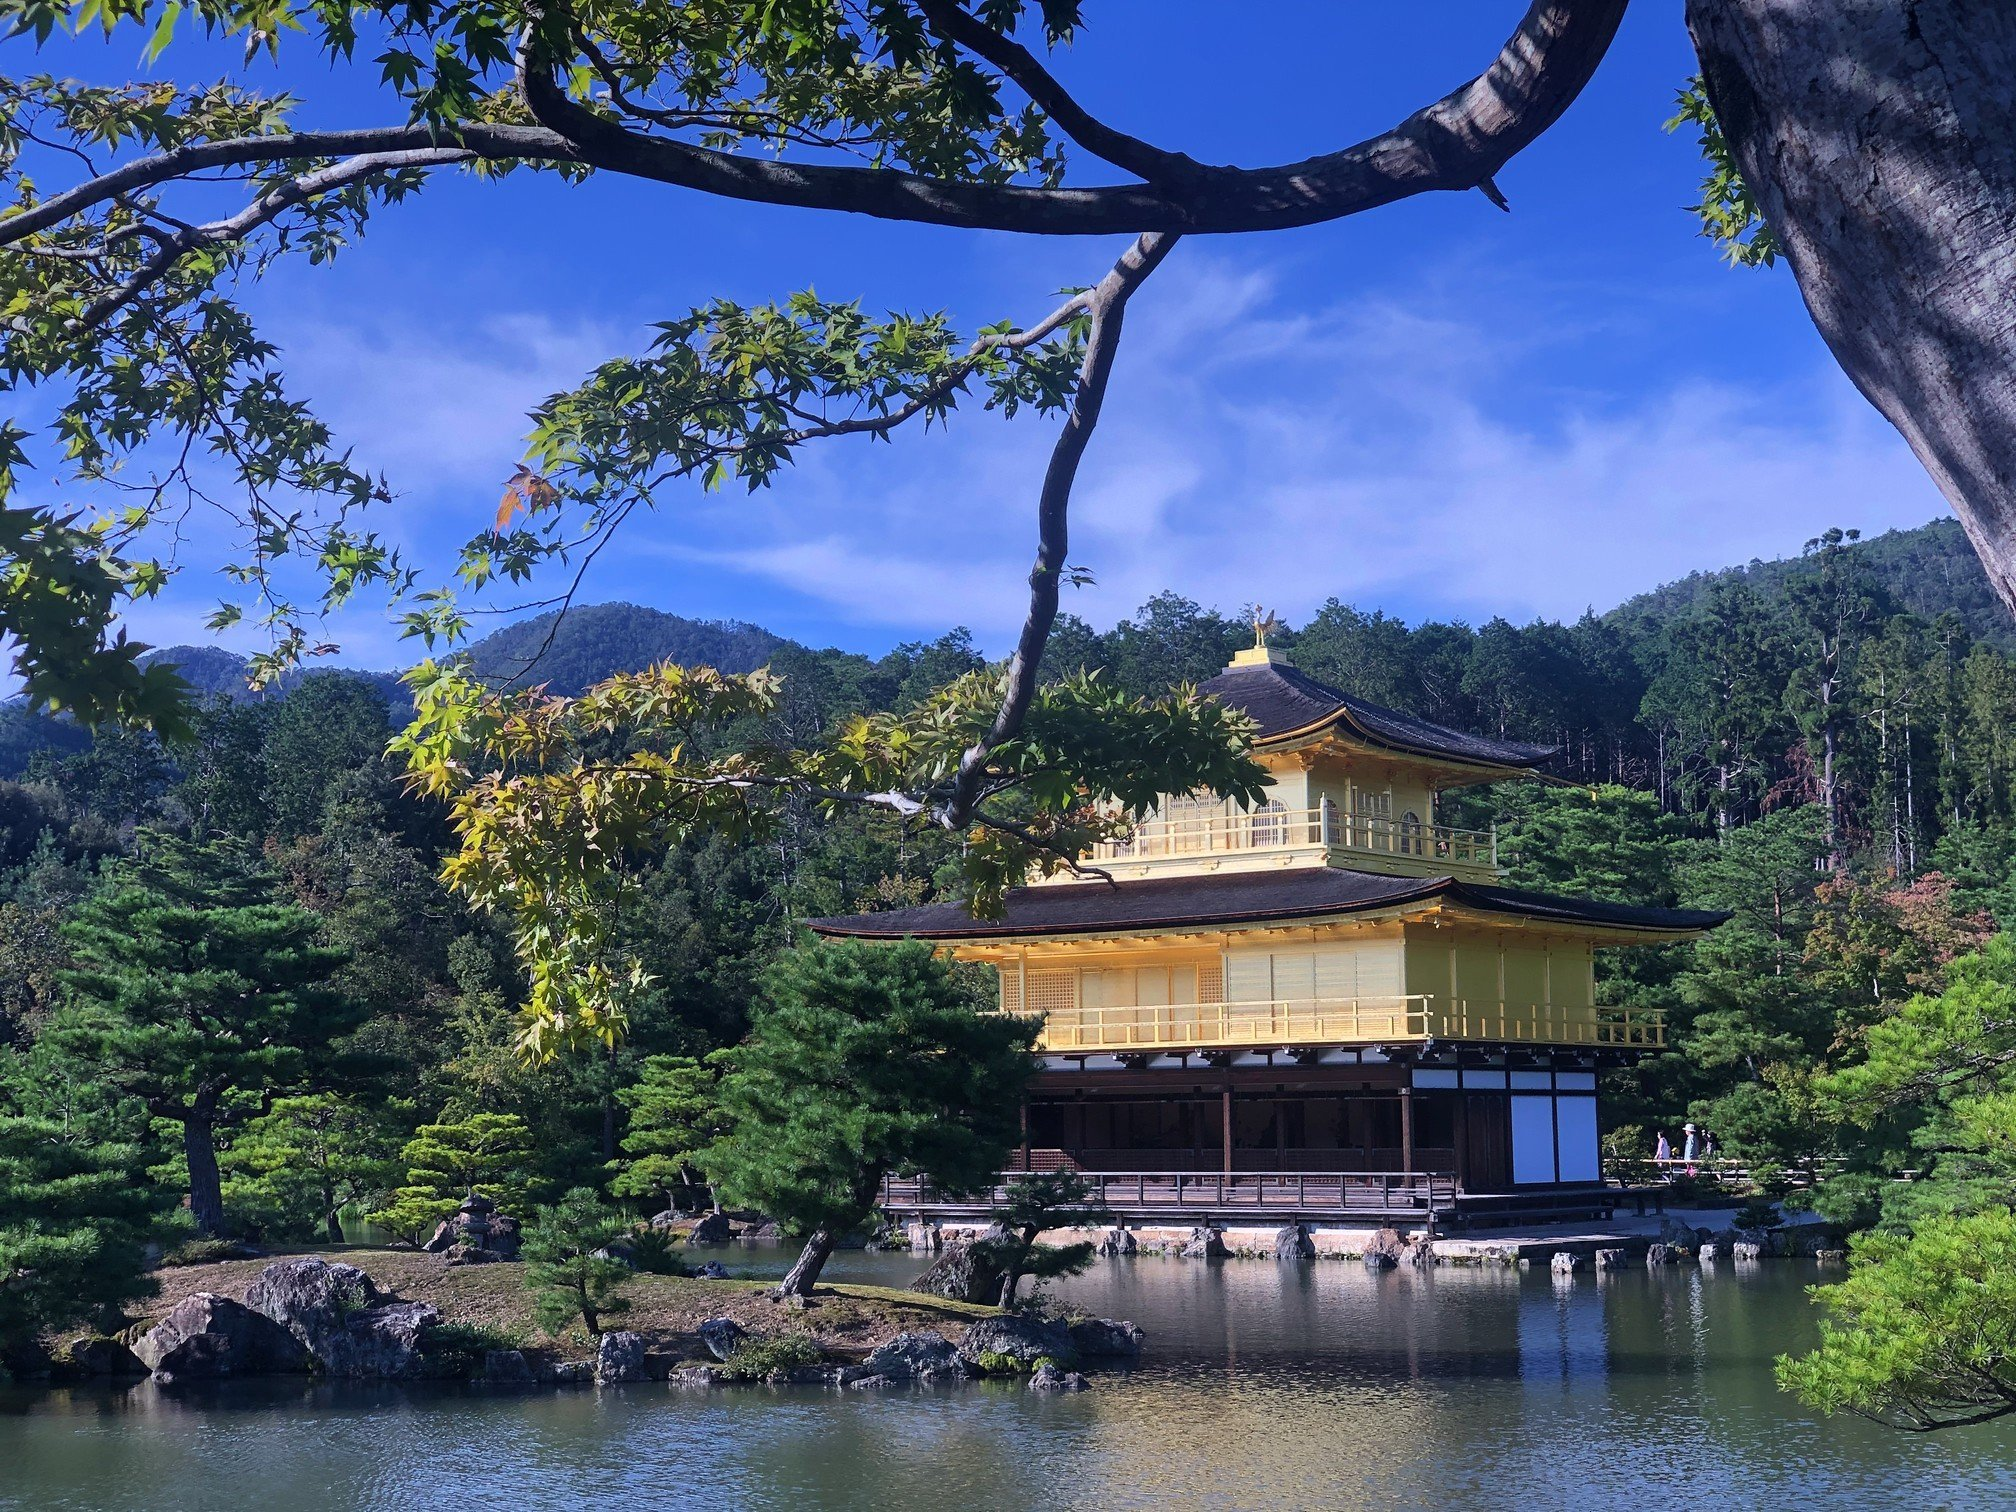 Top 5 places you have to visit in Kyoto